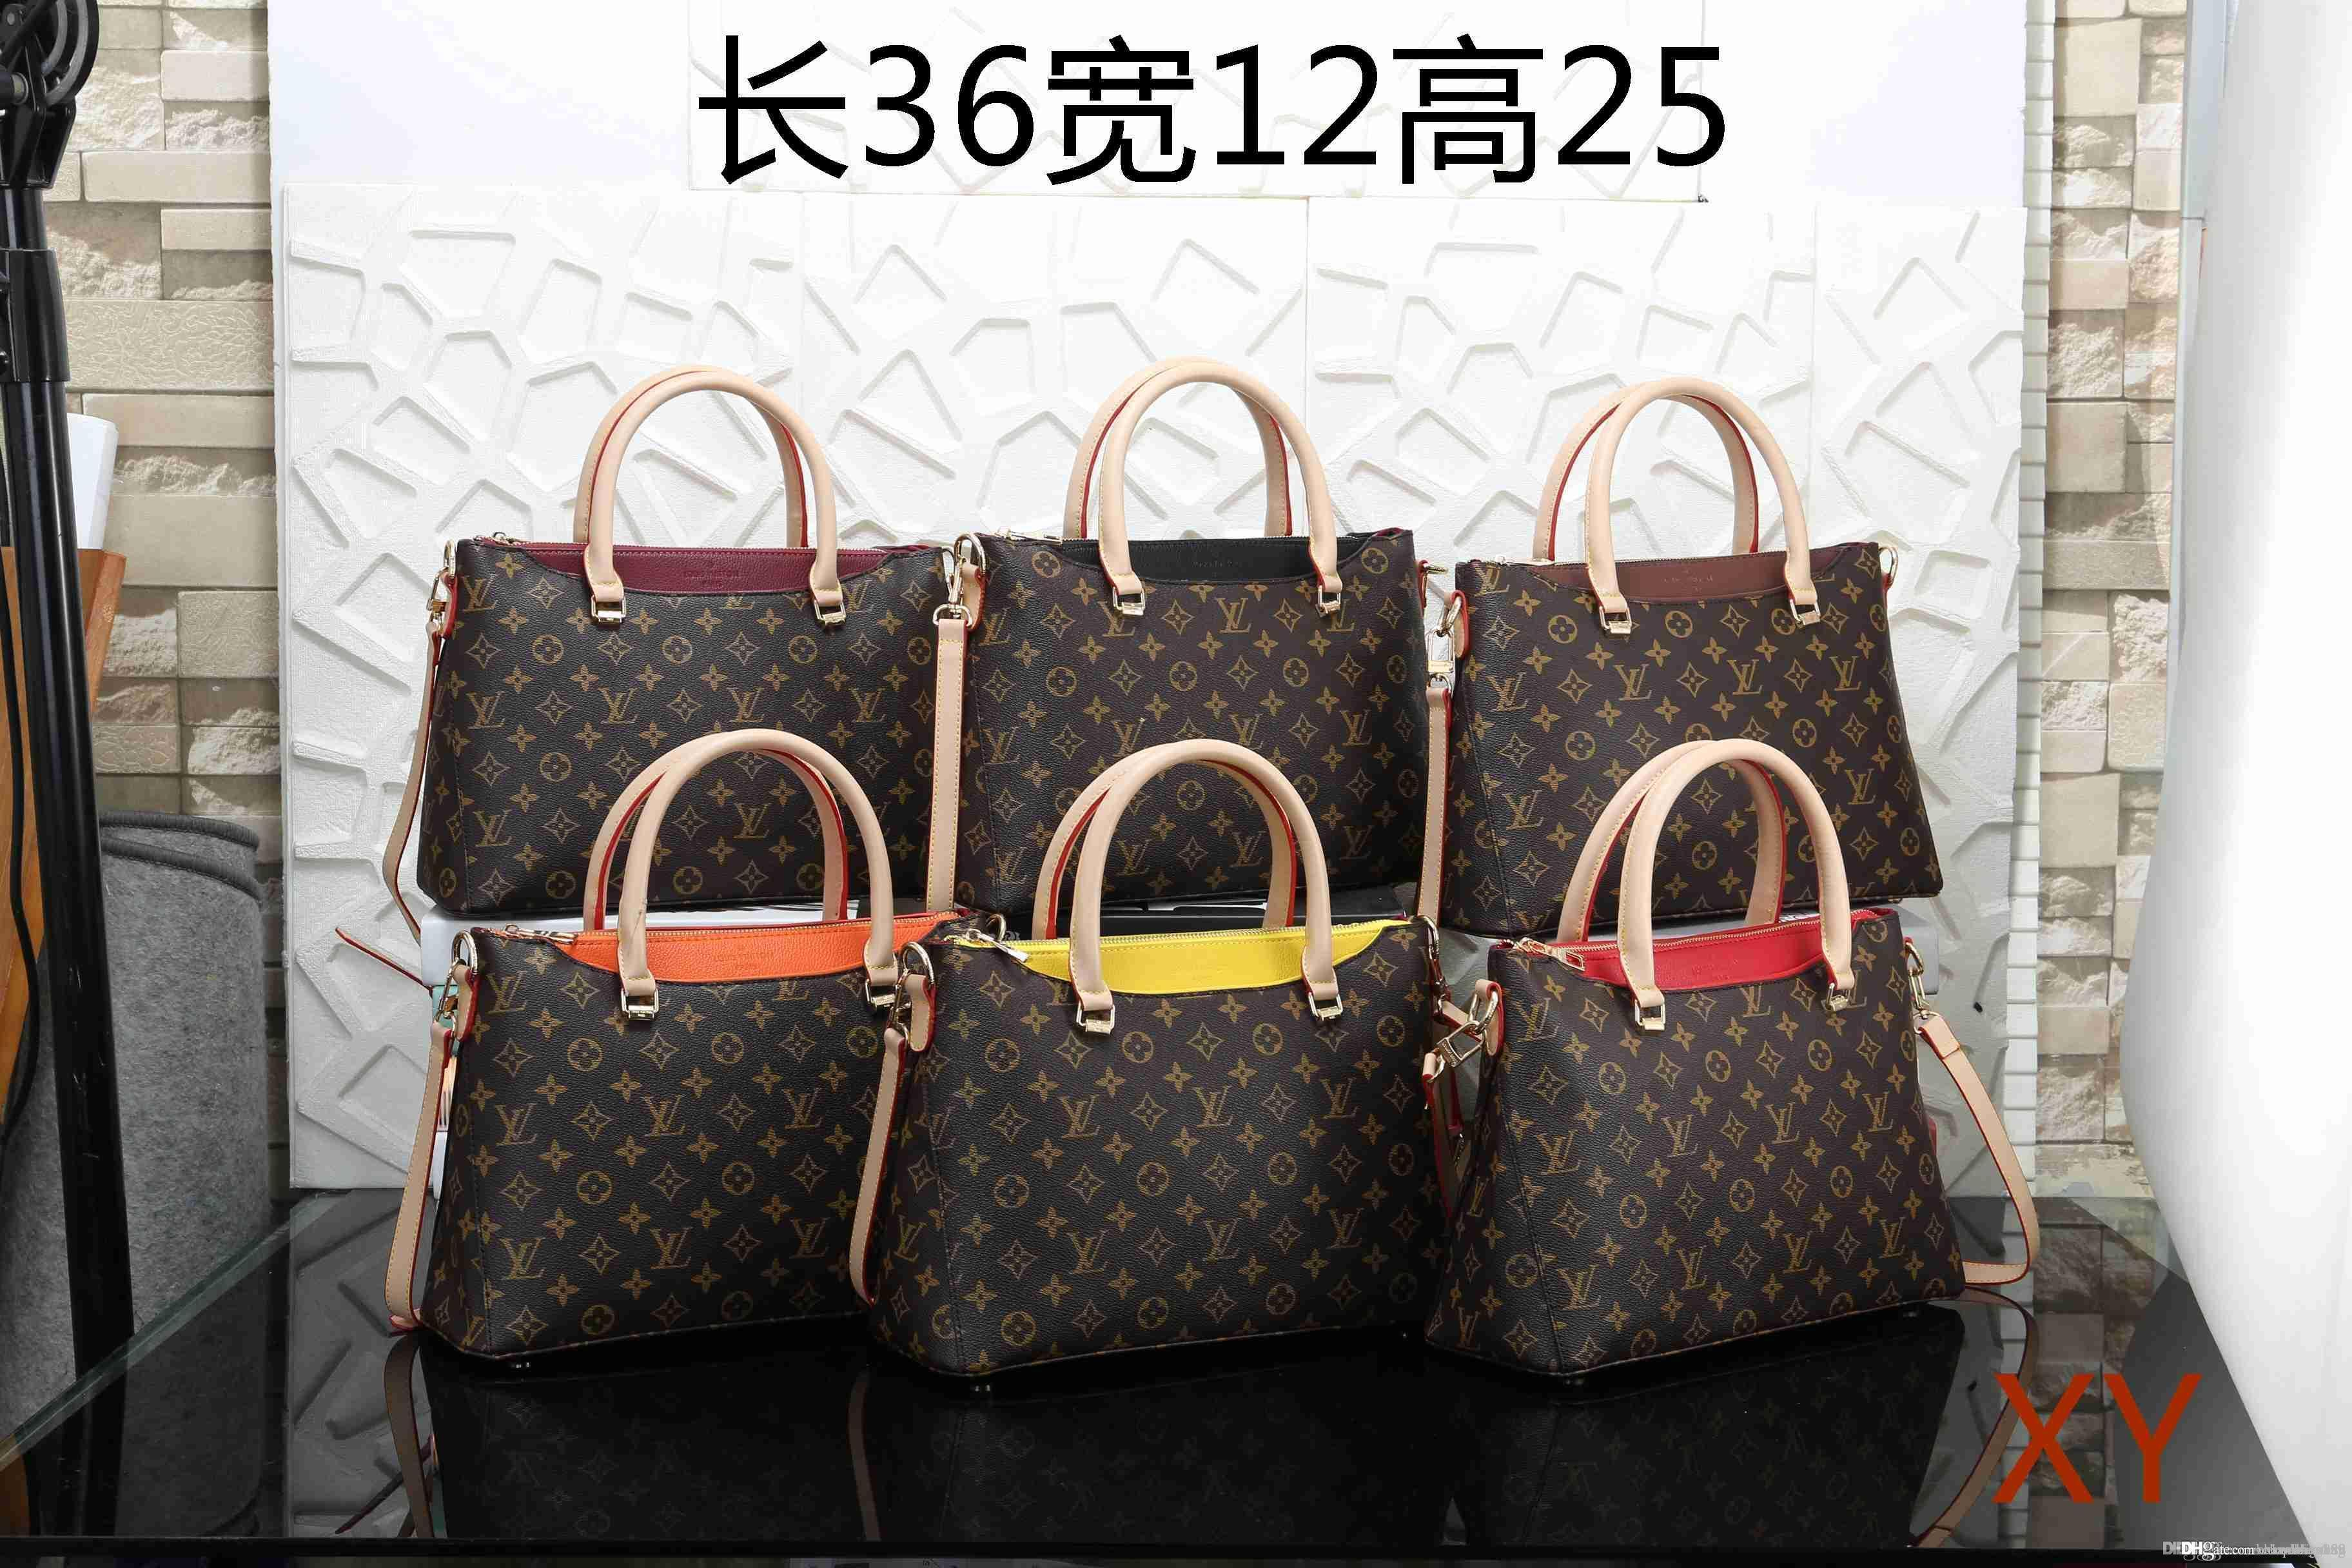 287cc214dd48 MK 00001 XY NEW Styles Fashion Bags Ladies Handbags Designer Bags Women  Tote Bag Luxury Brands Bags Single Shoulder Bag Online with  41.15 Piece on  ...